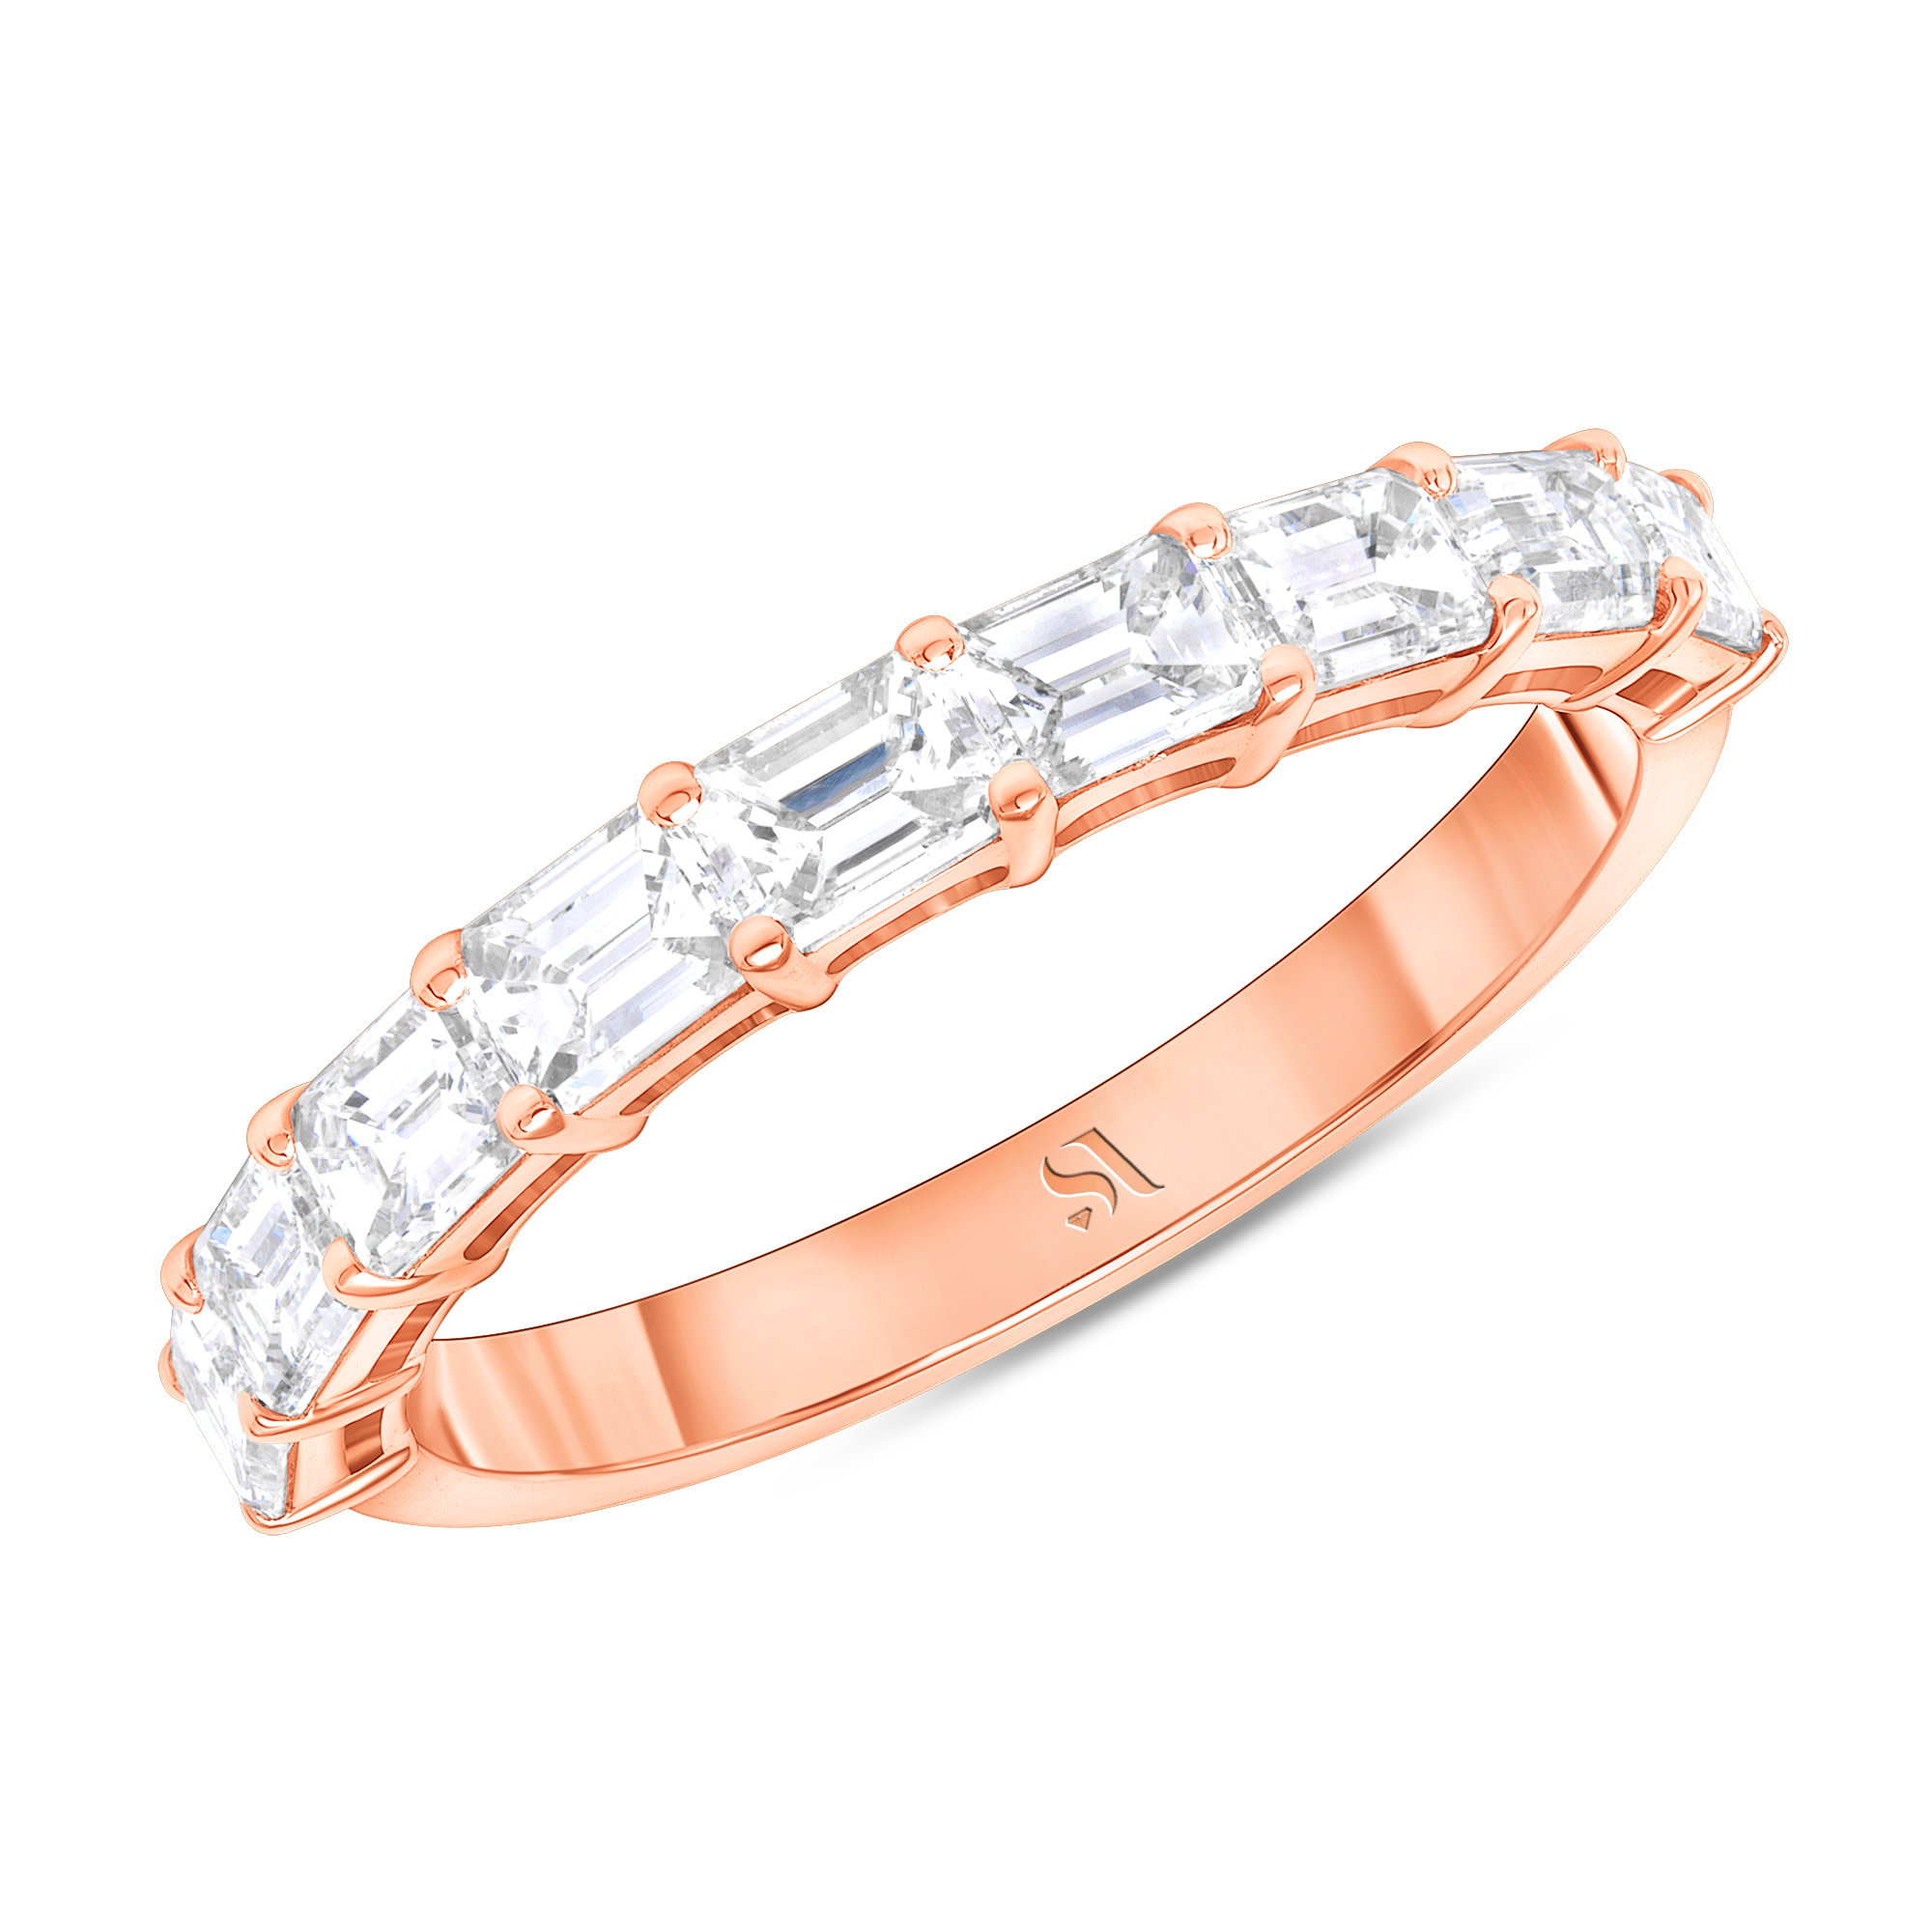 emerald cut eternity band with half in rose gold